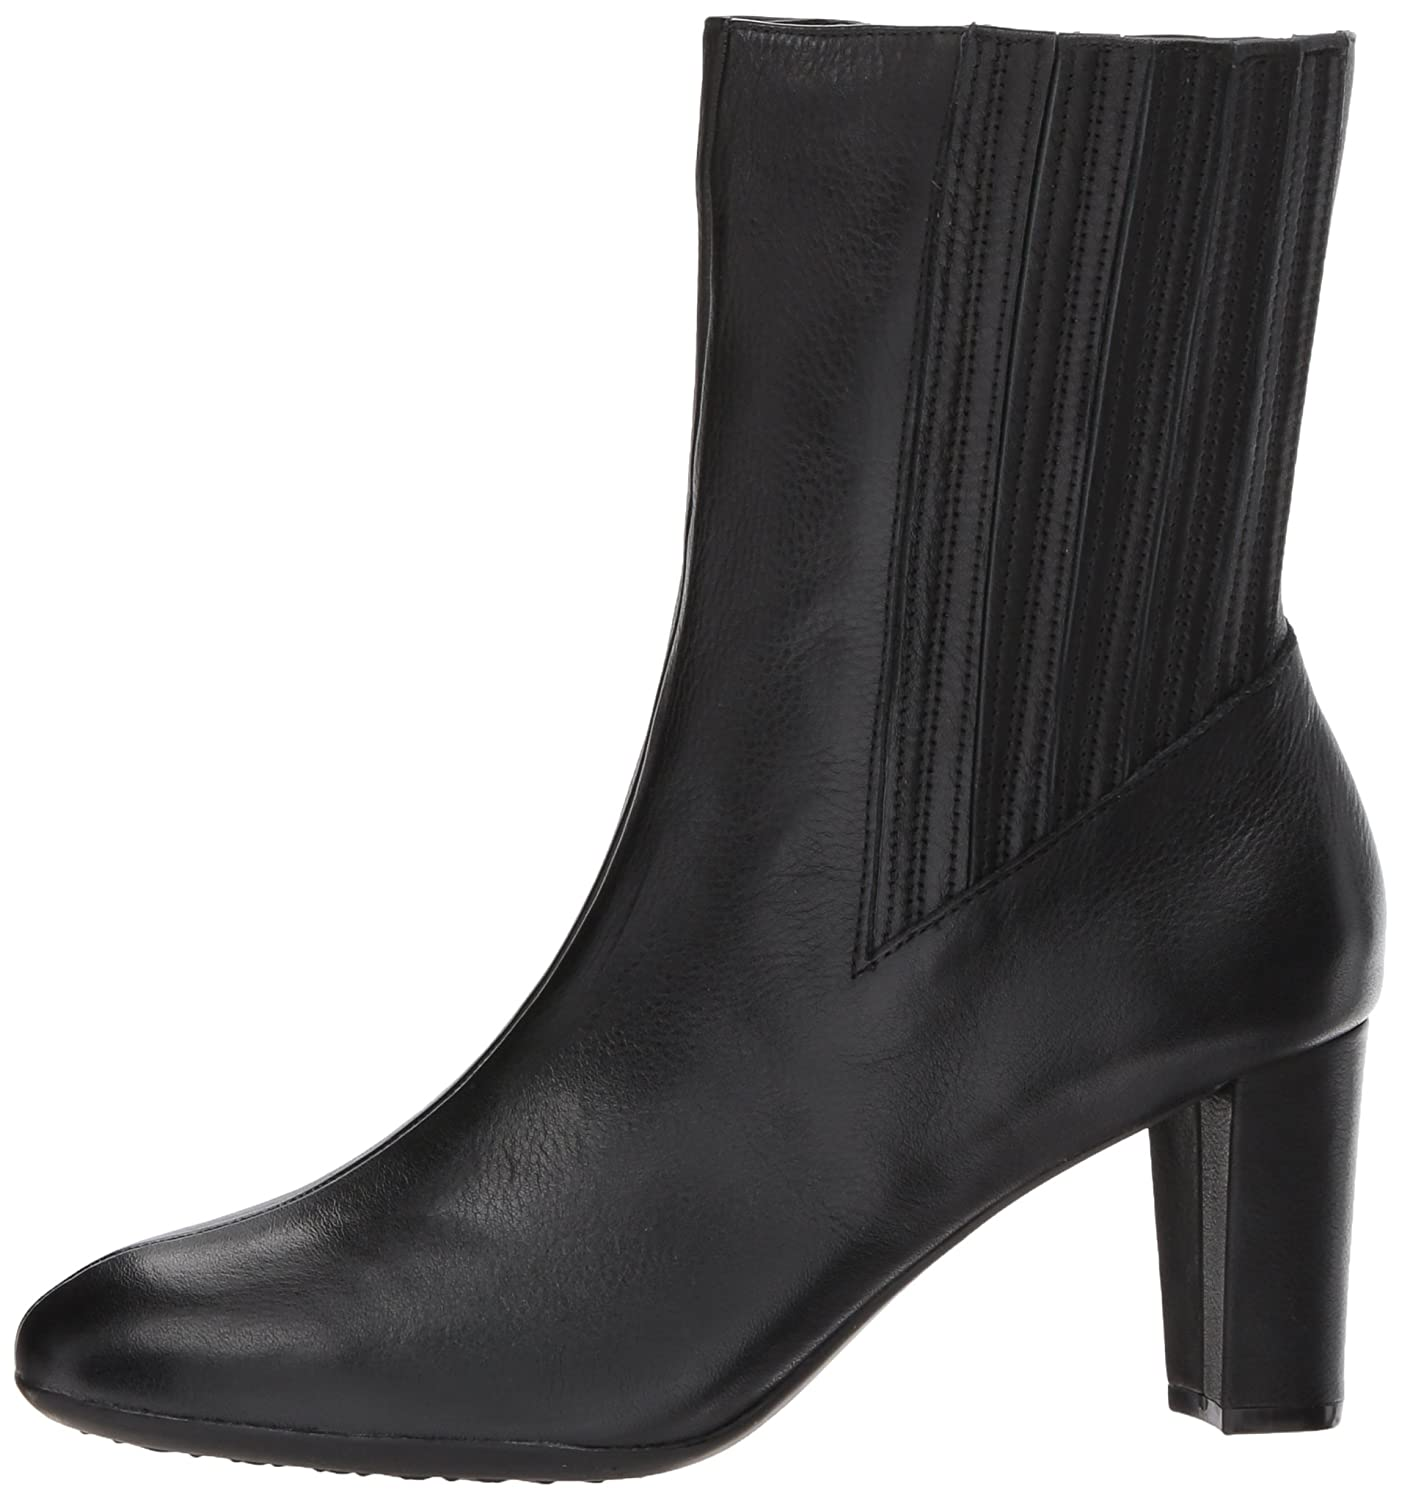 Aerosoles Women's Fifth Ave Mid Calf Boot B0753QRW2K 5.5 M US|Black Leather